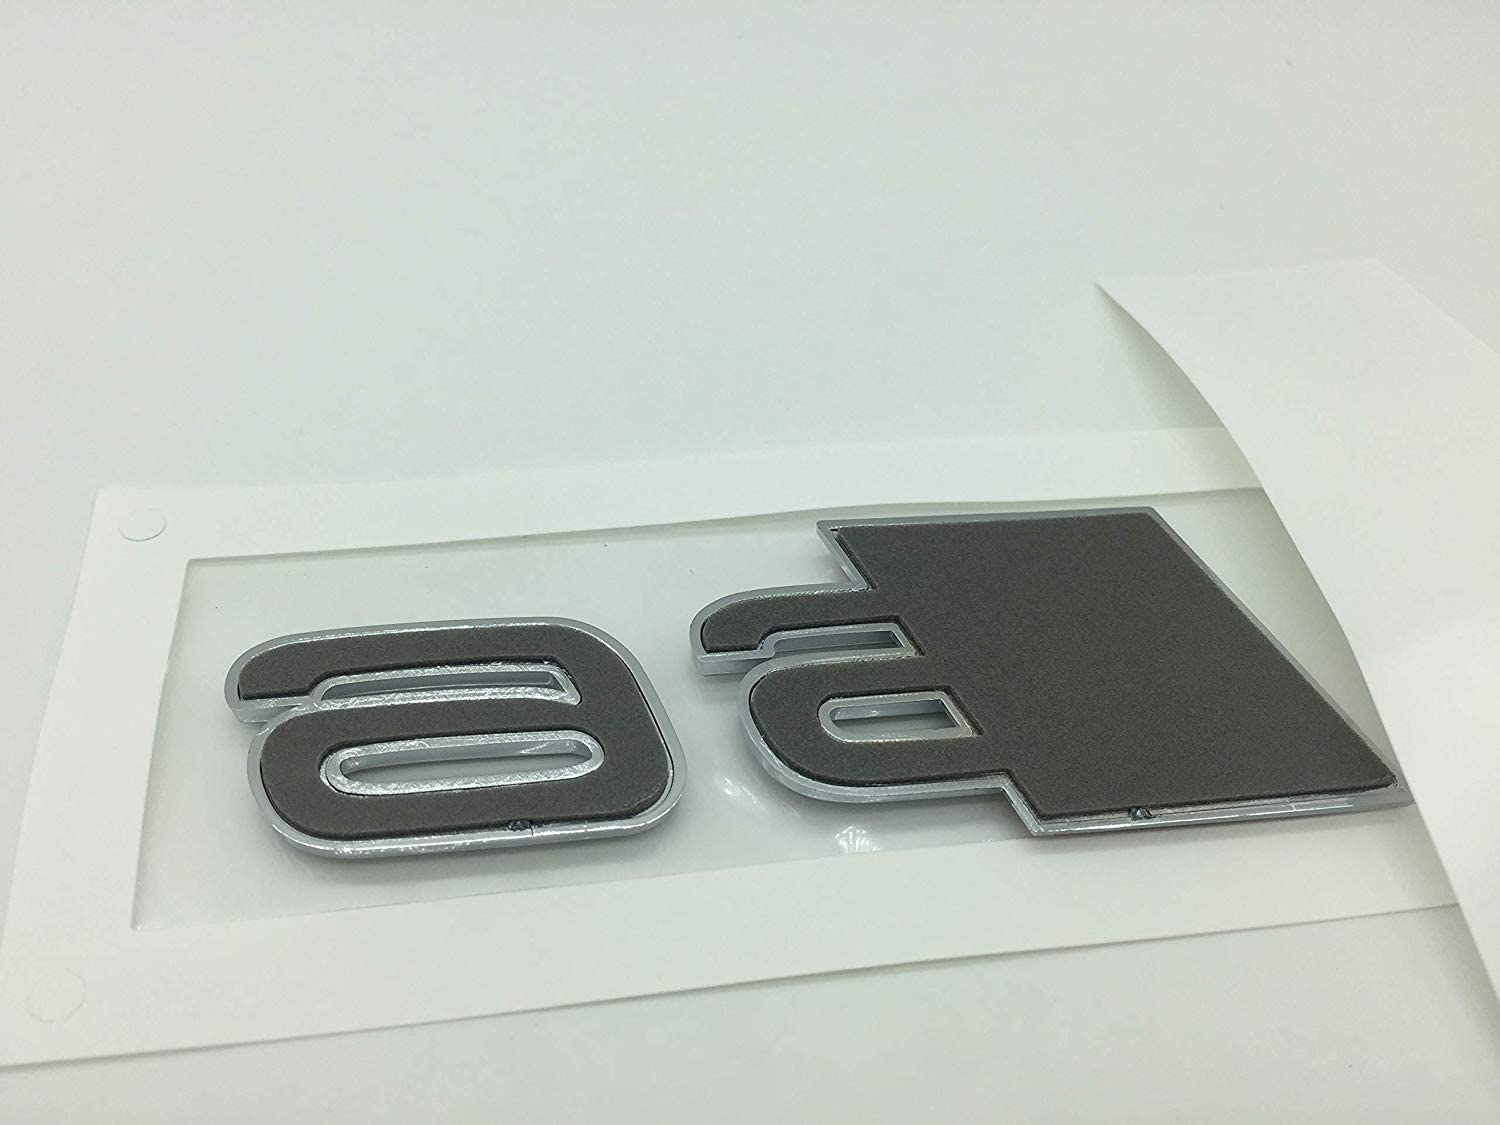 OEM ABS Nameplate compatible for Audi S 3 4 5 6 7 8 s3 S4 s5 s6 s7 s8 Chrome Silver Emblem 3D Trunk Logo Badge Compact S7